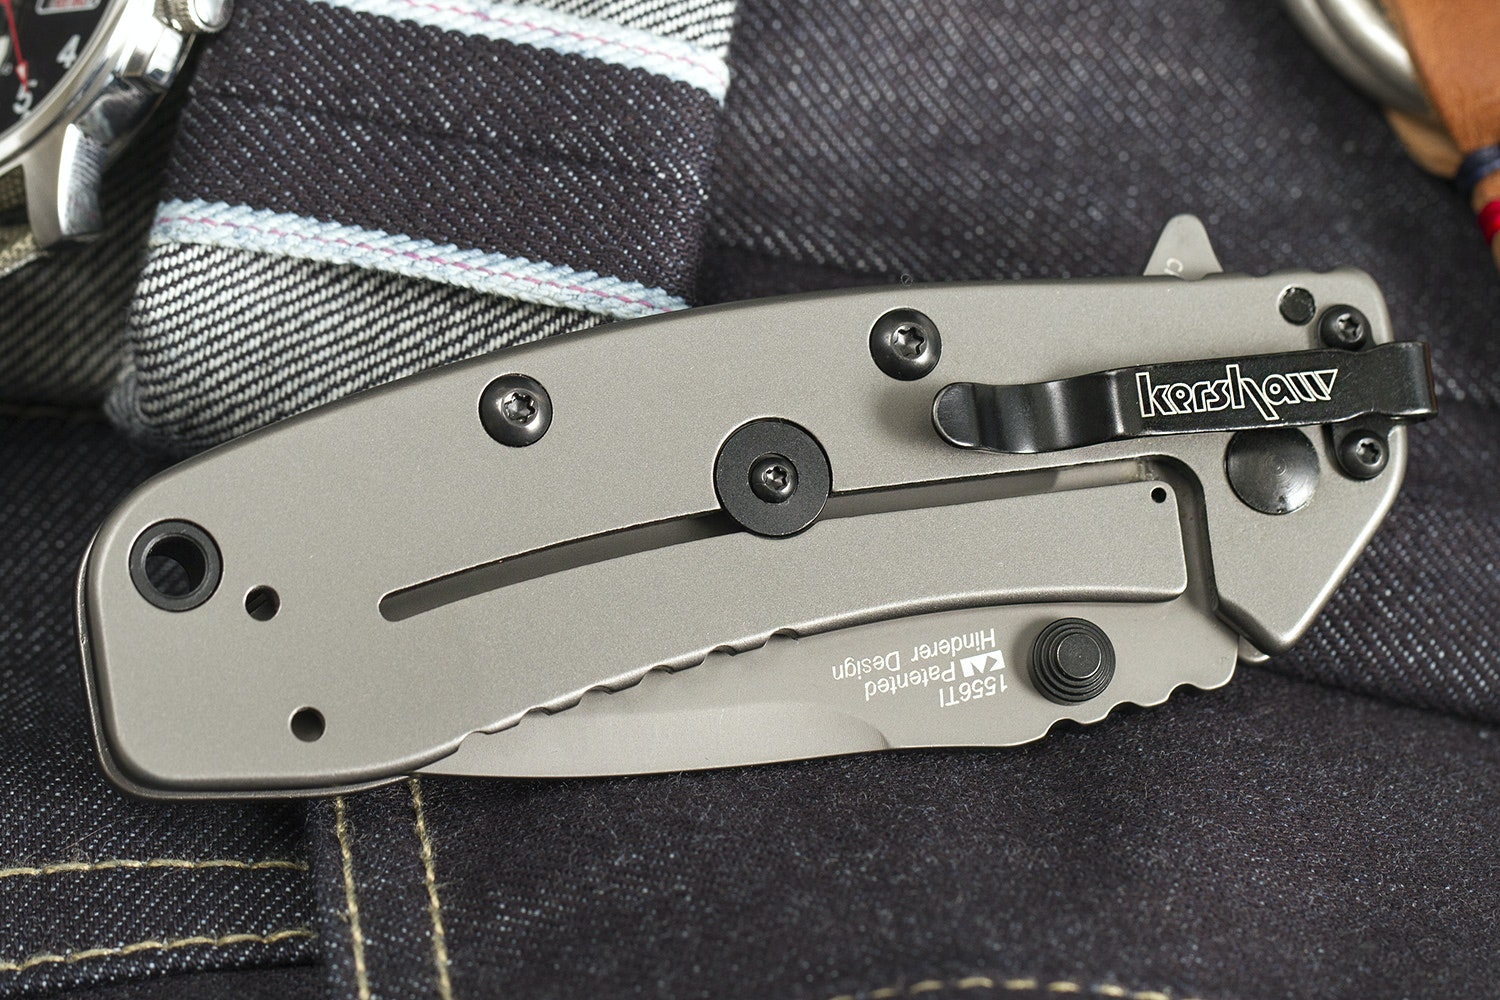 Kershaw 1556TI Cryo II Folding Knife w/ SpeedSafe